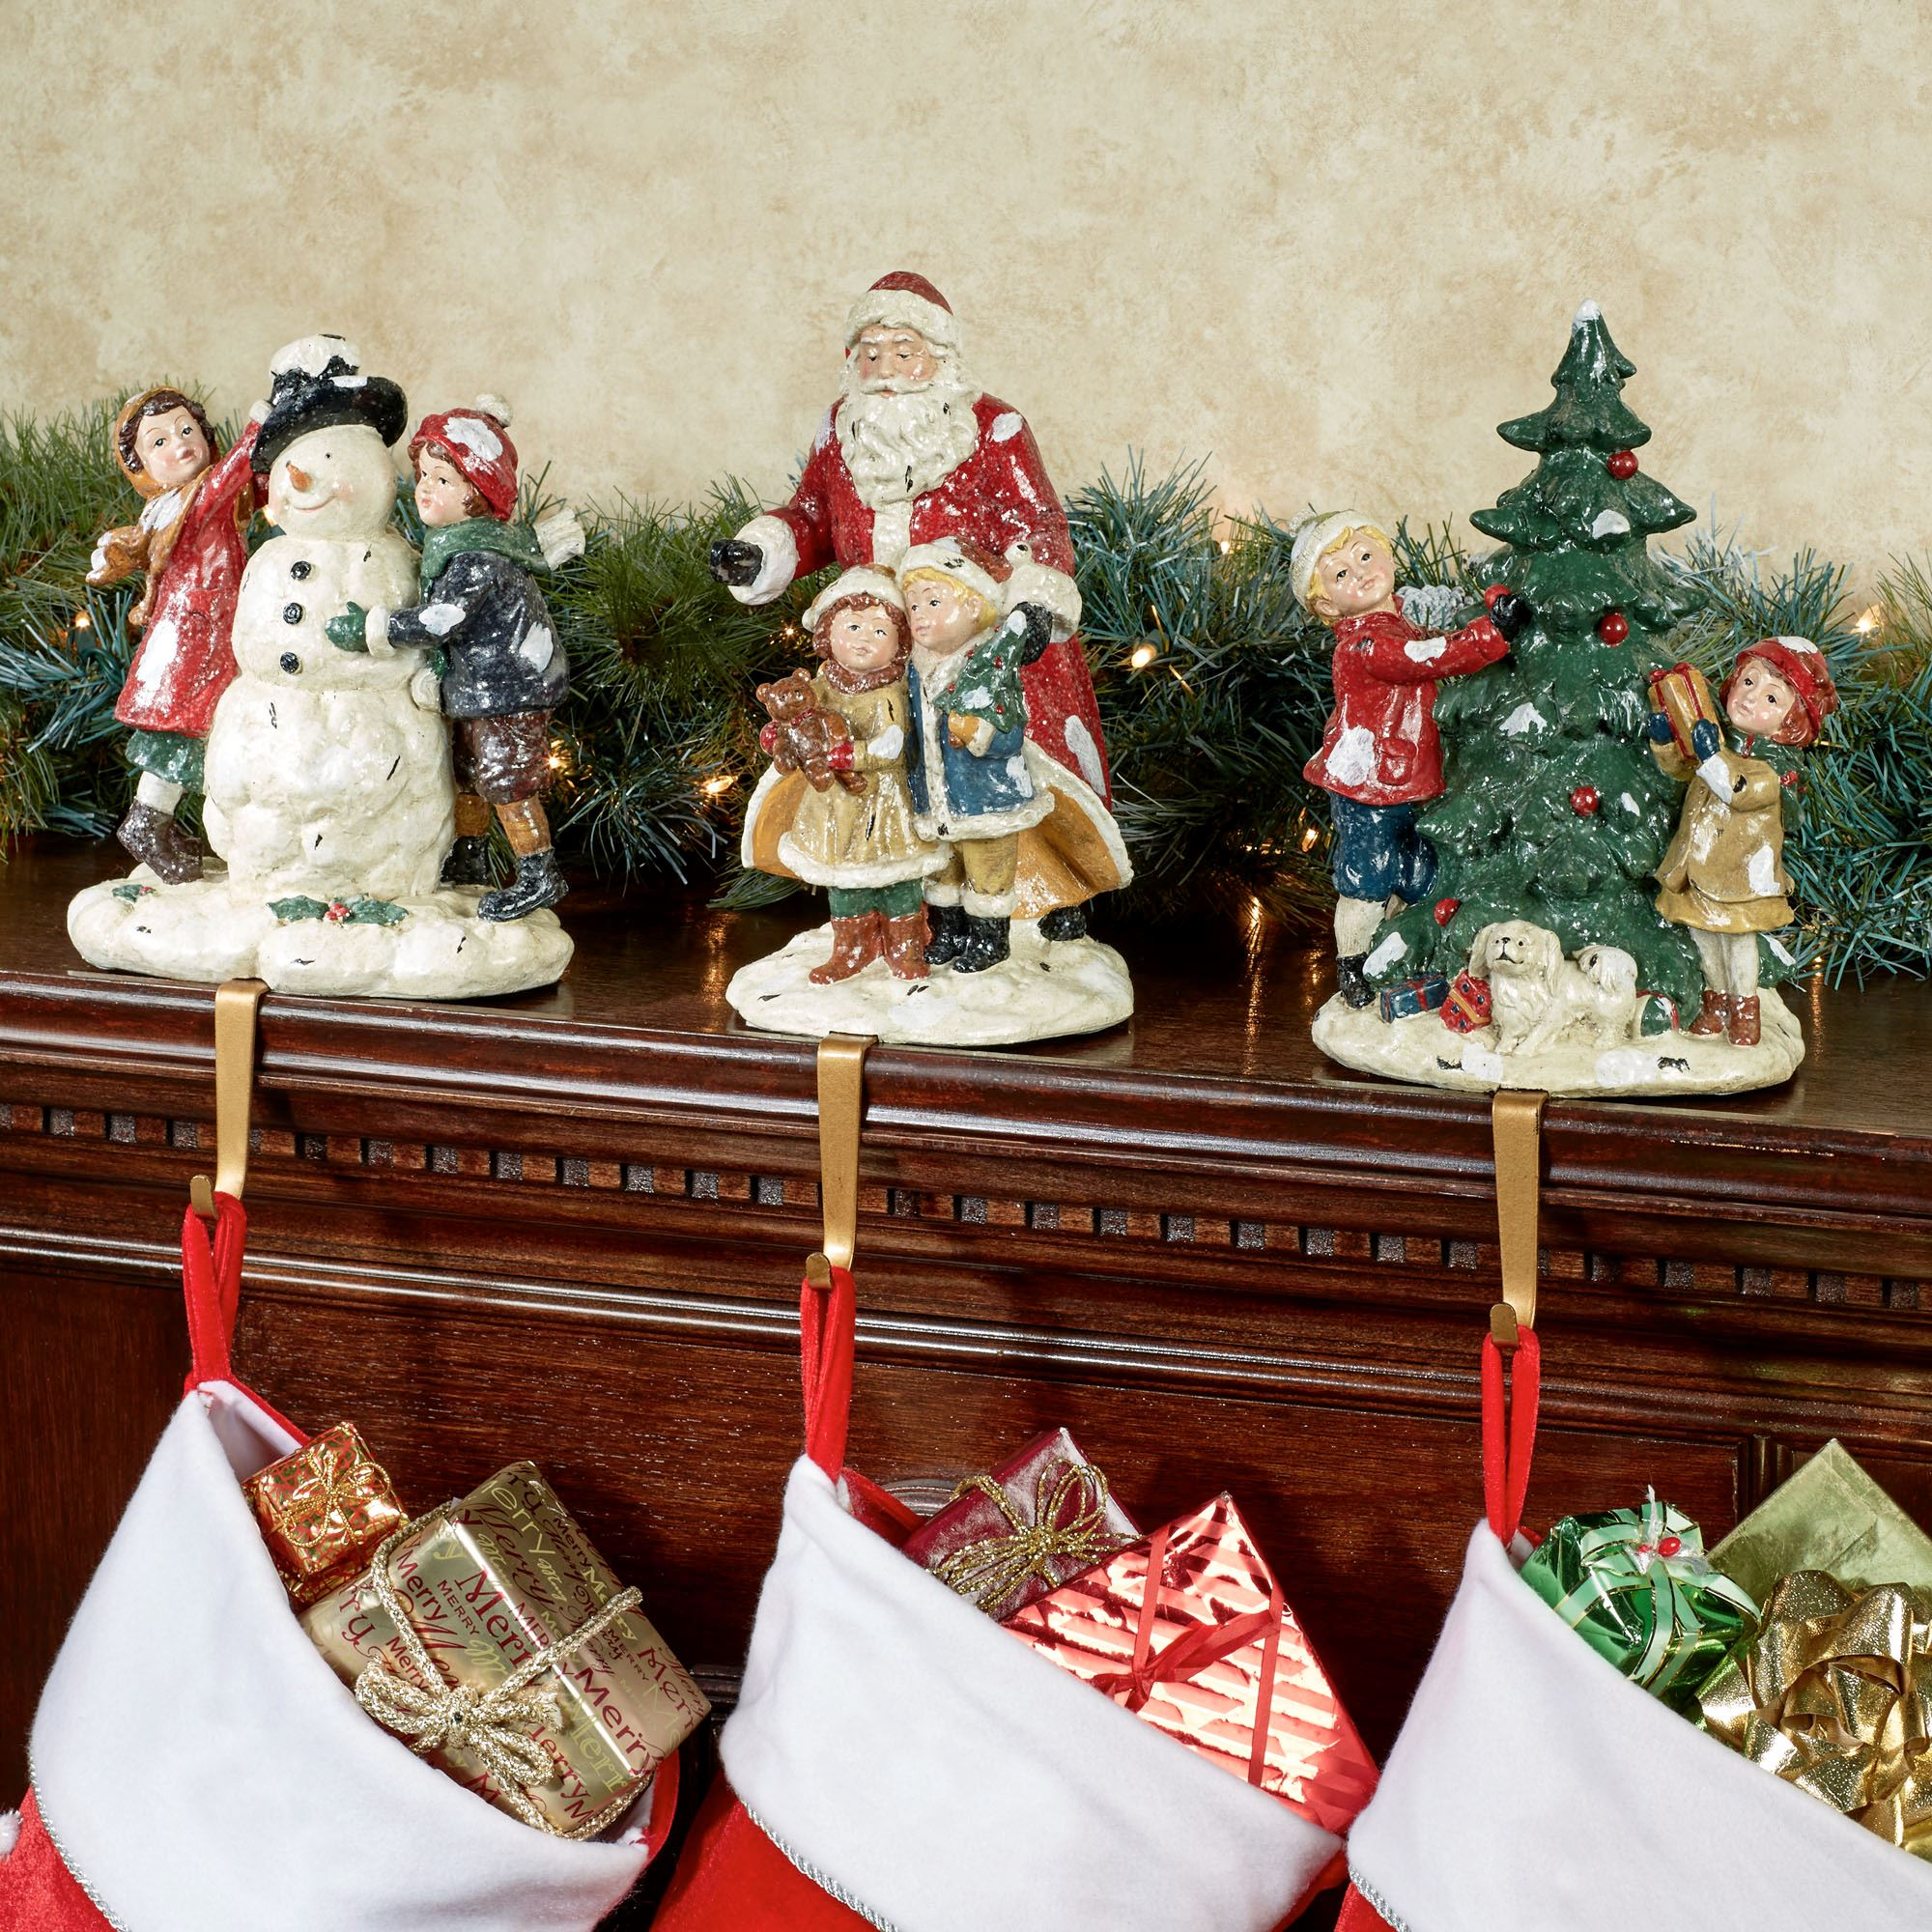 halls whole blog fun fireplace ls for deck christmas vernon even new and lillian your family the designs holders stocking personalized classic stockings with pet